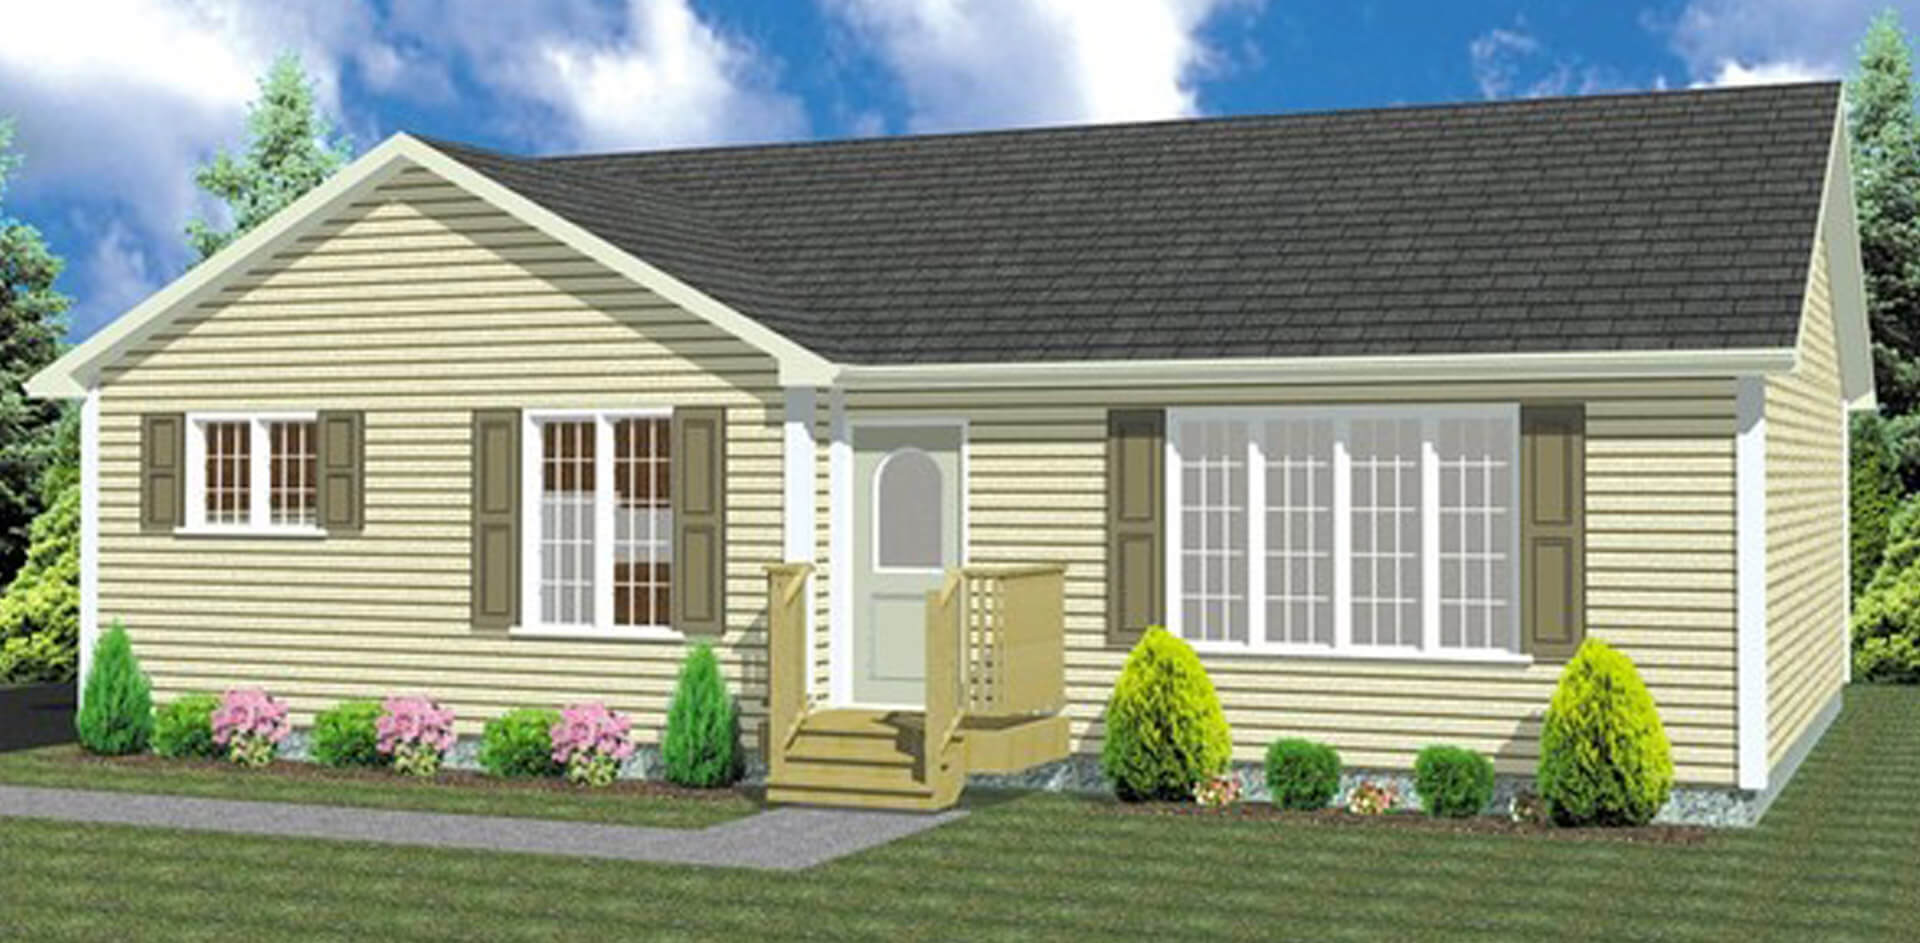 1218 sq.ft. timber mart house 3 bed 1 bath exterior render